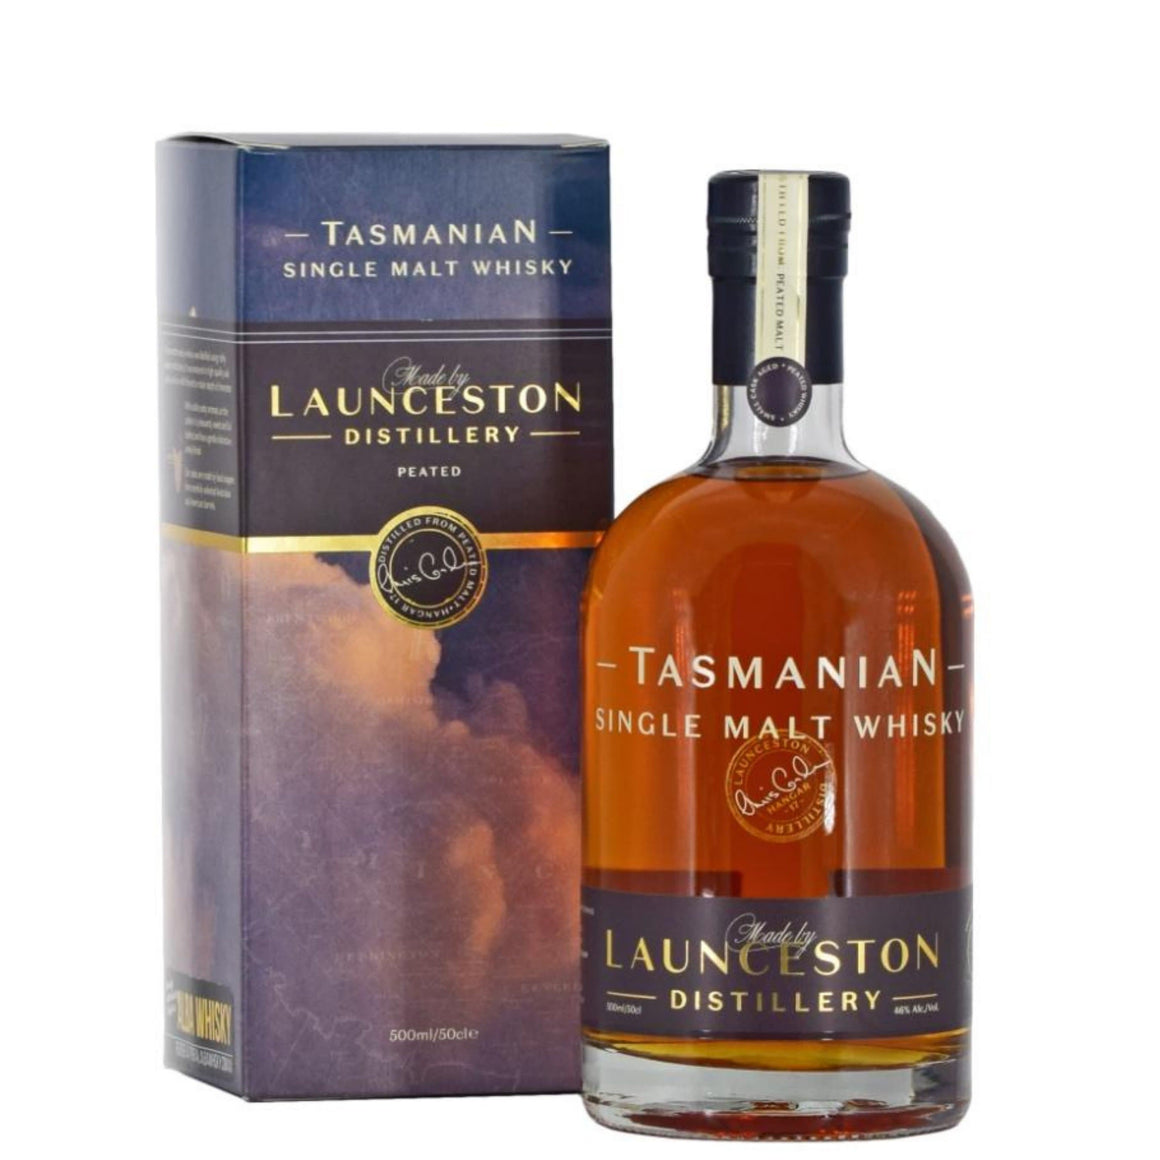 Launceston Distillery Peated Single Malt, 46% 700ml